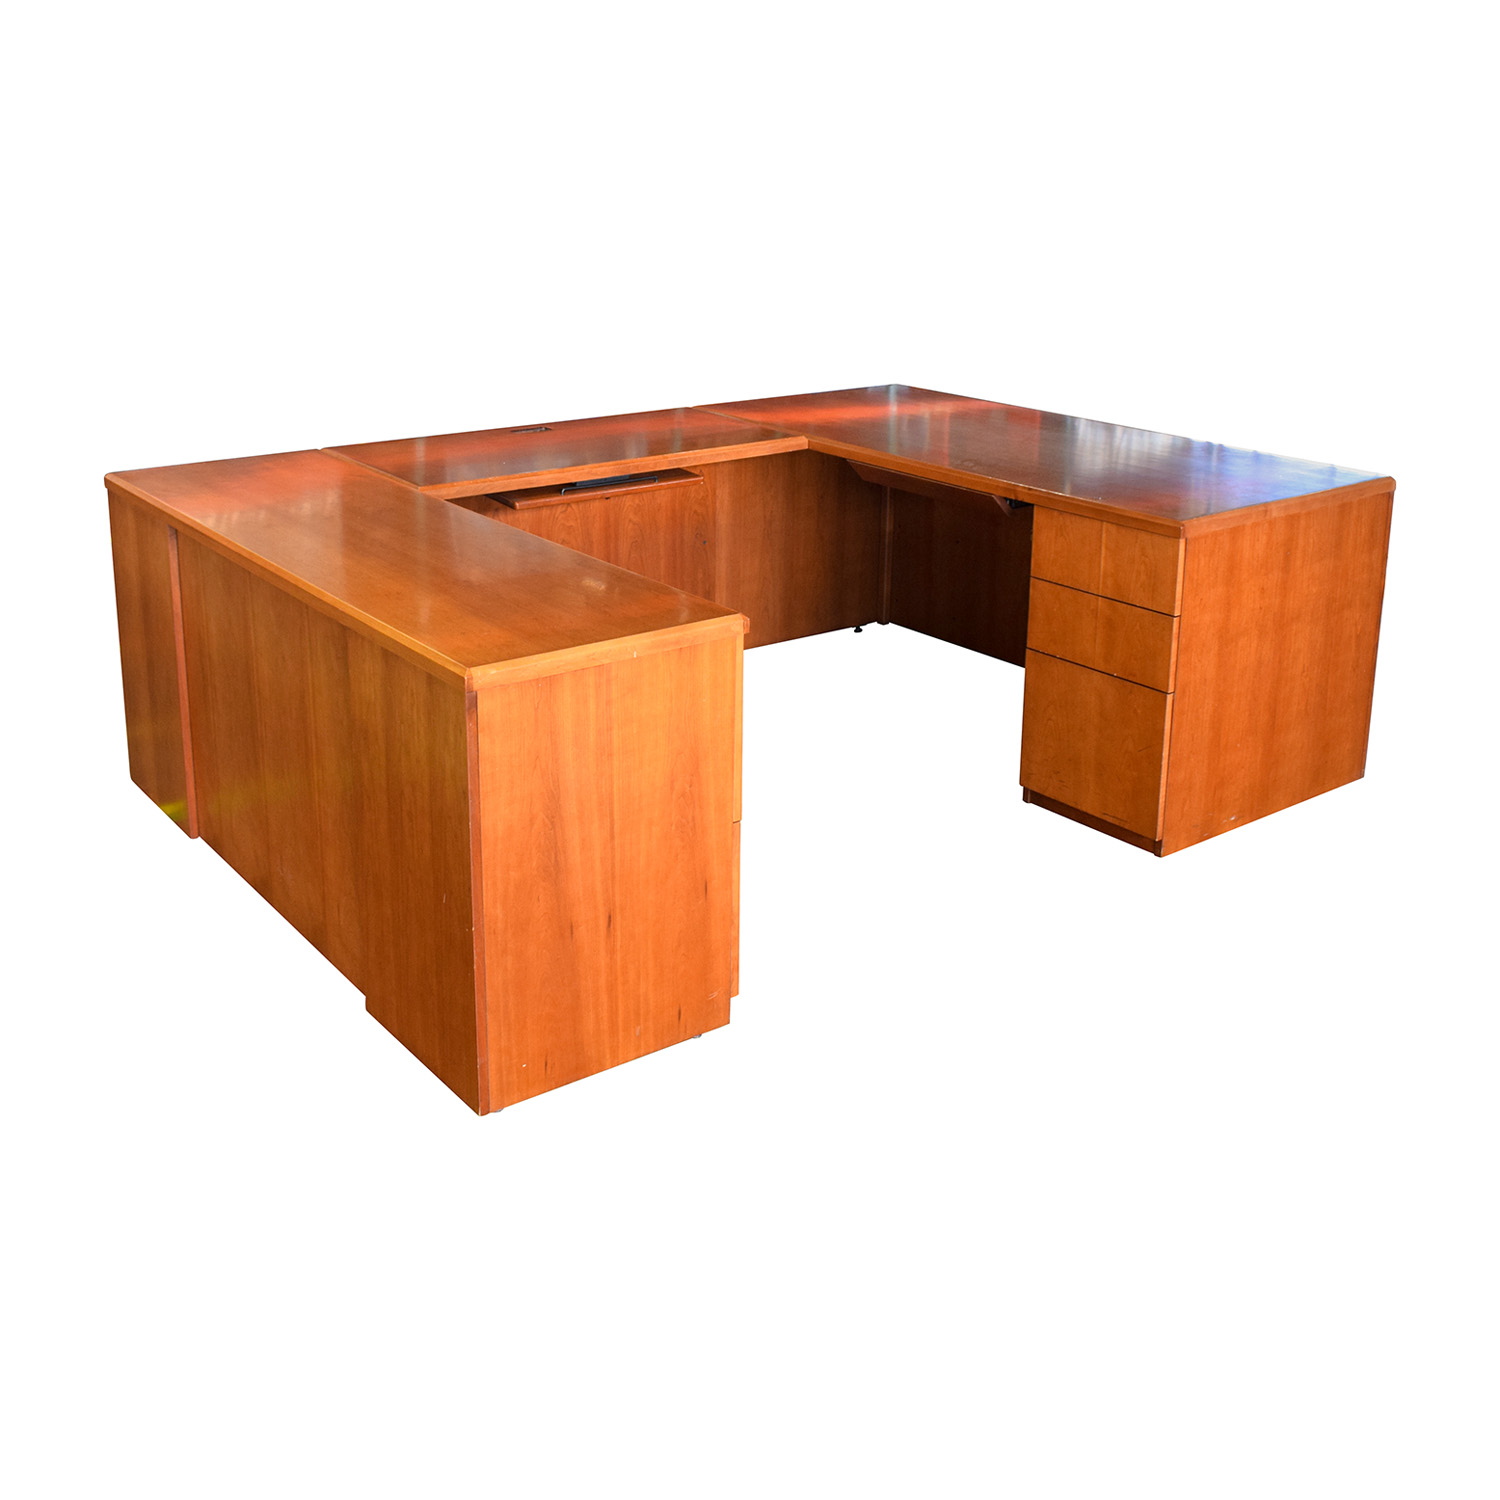 Gunlocke Company Gunlocke Company U-Shaped Desk used